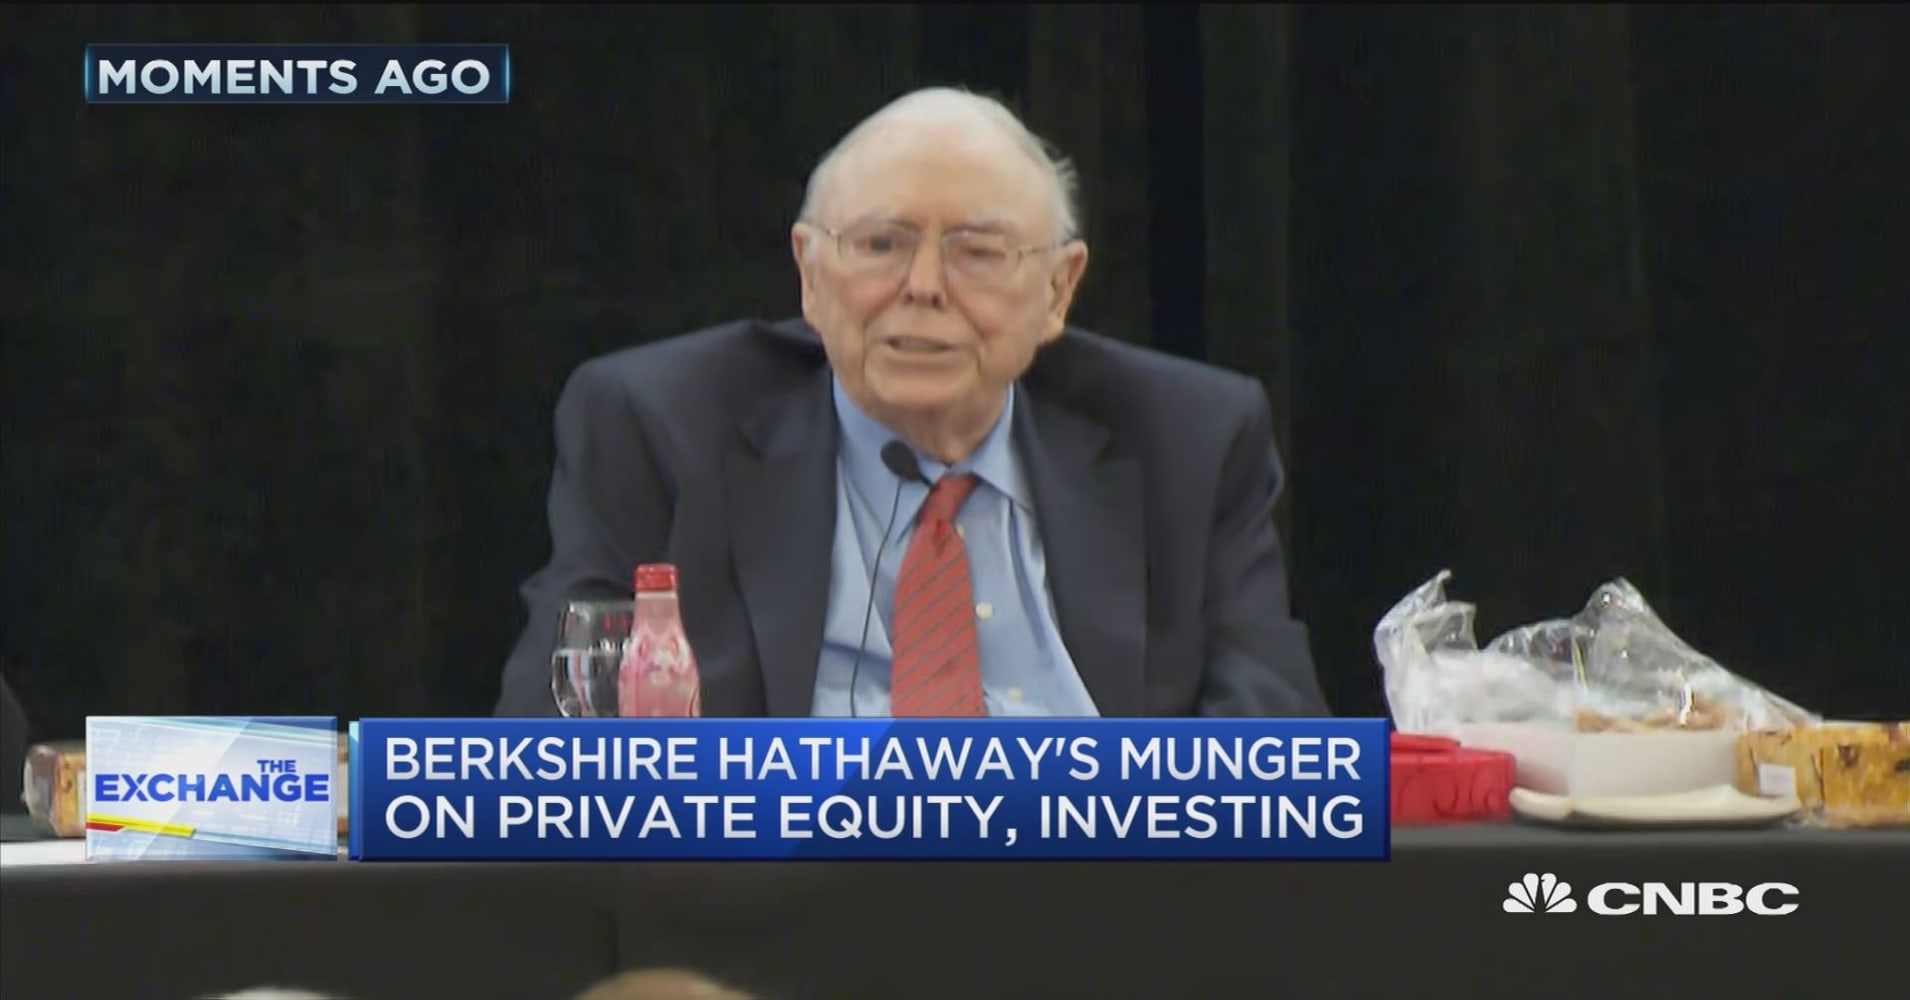 Investing Calendario.Berkshire Hathaway S Munger On Private Equity And Investing